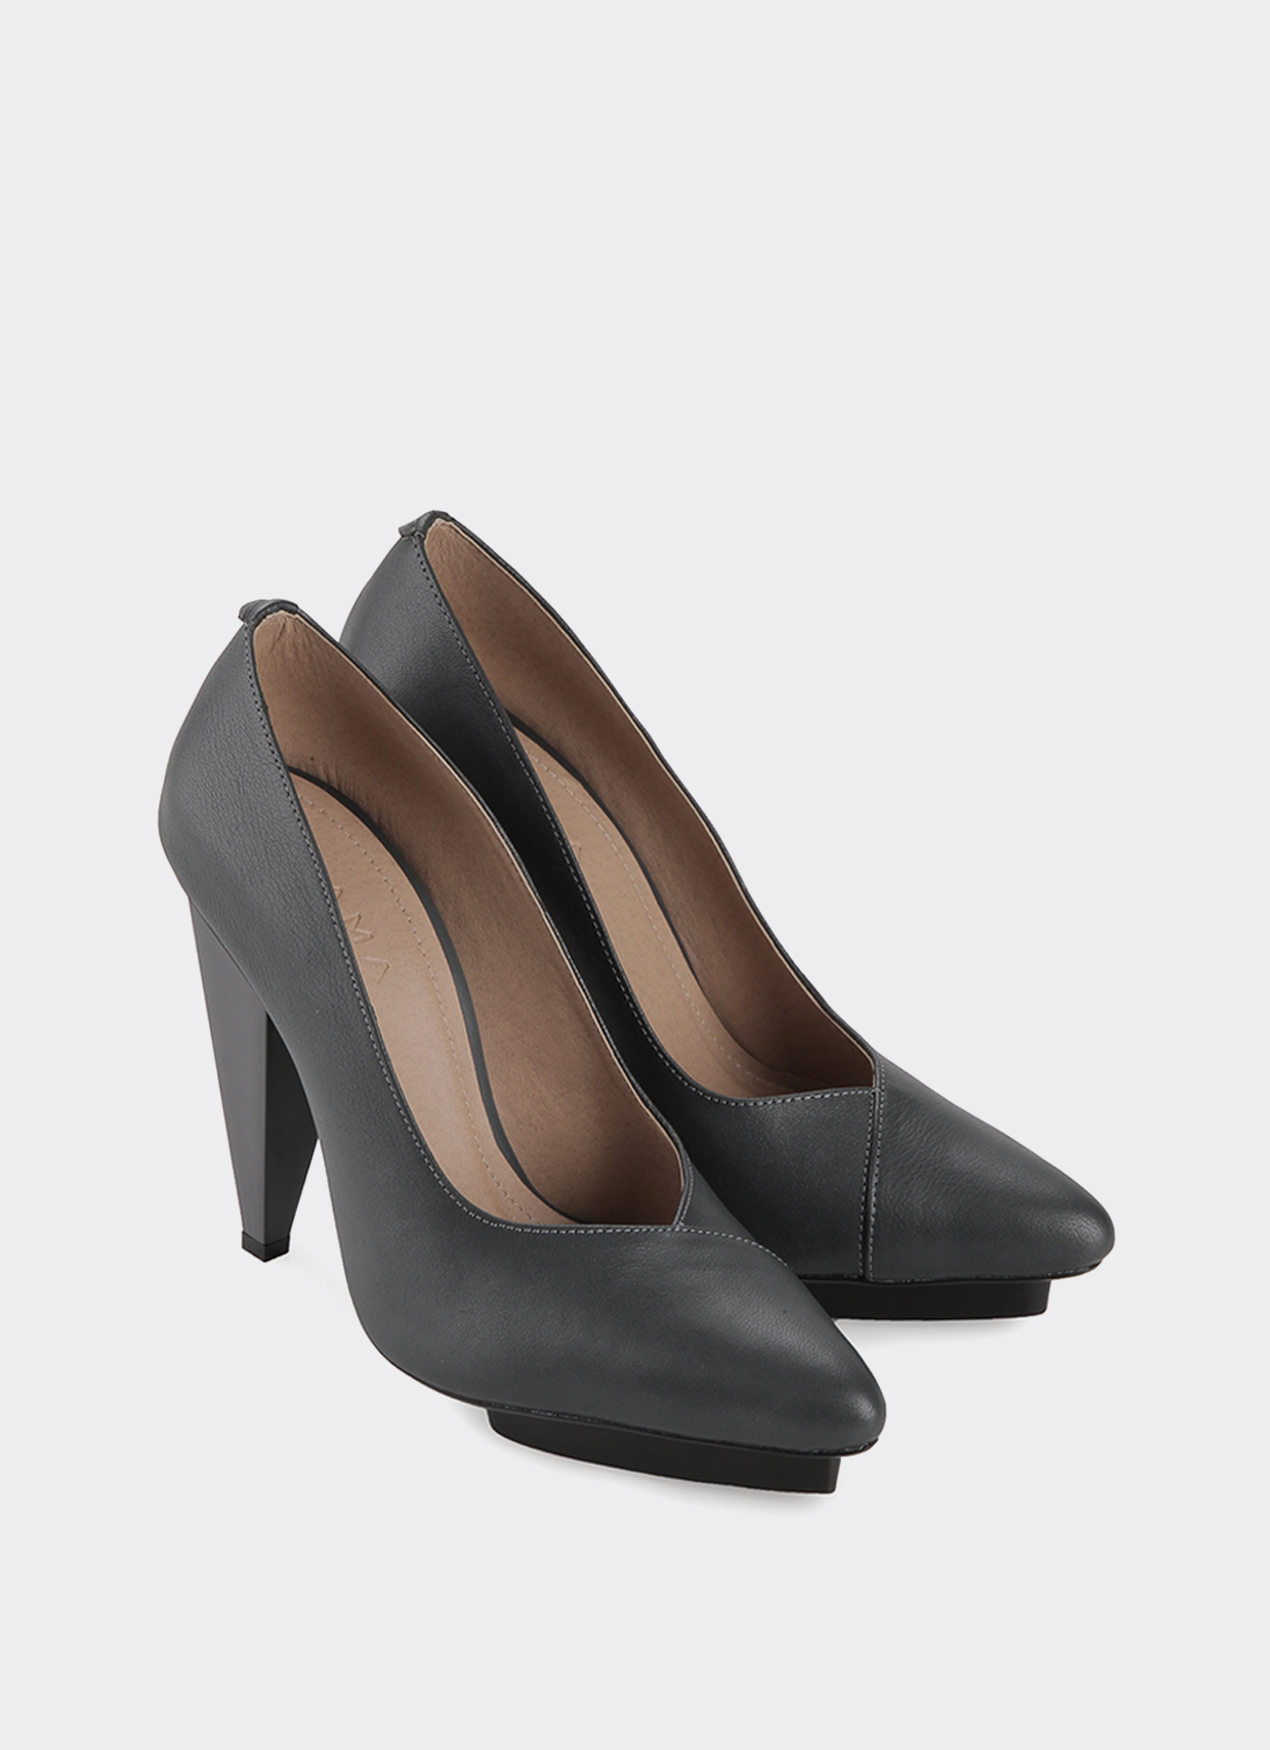 Drama Shoes Gray Ziyi Heels